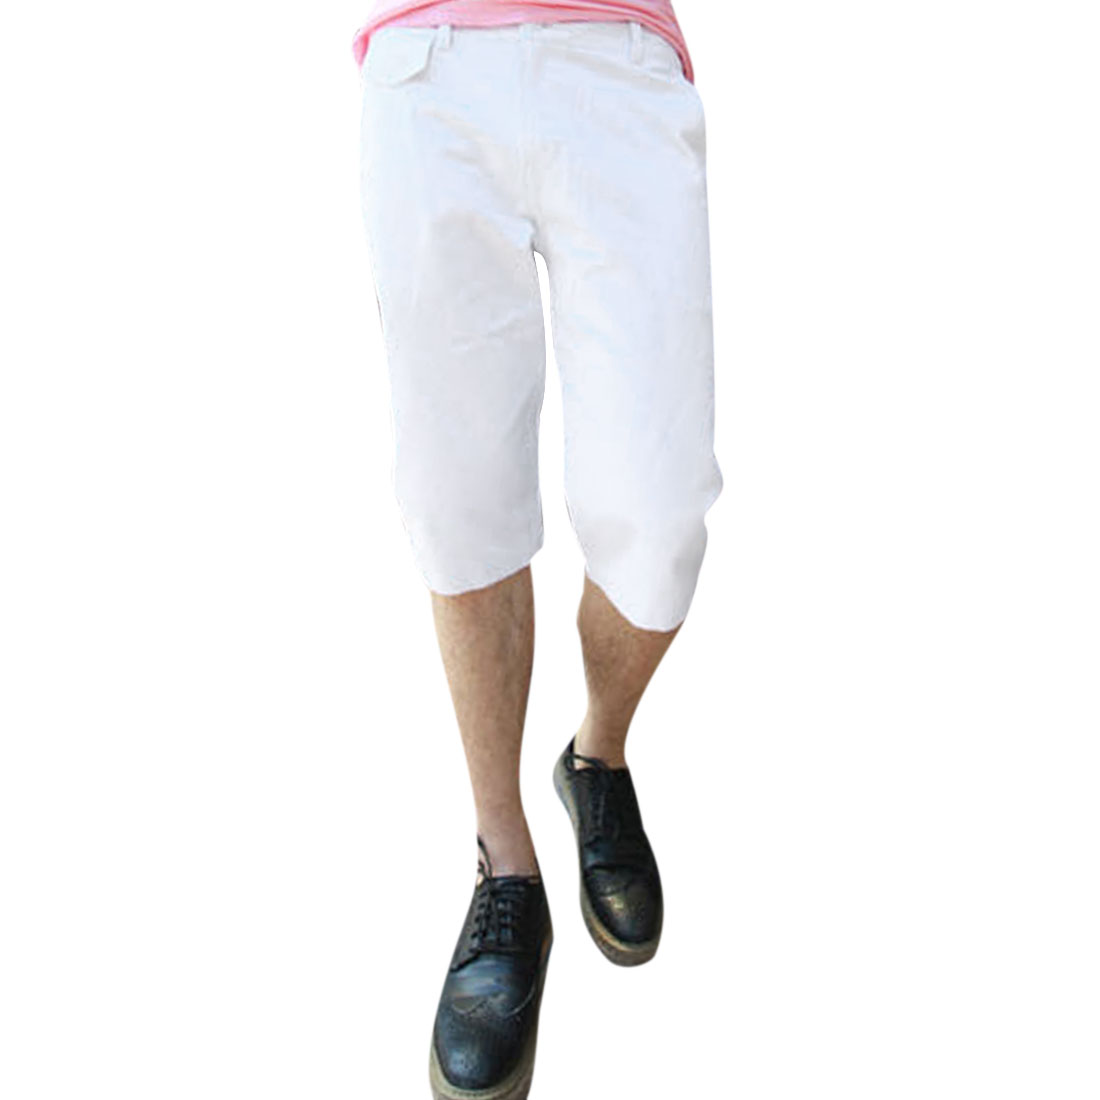 Men Zippered Fly Buttoned Closure Hip Pockets Shorts White W34